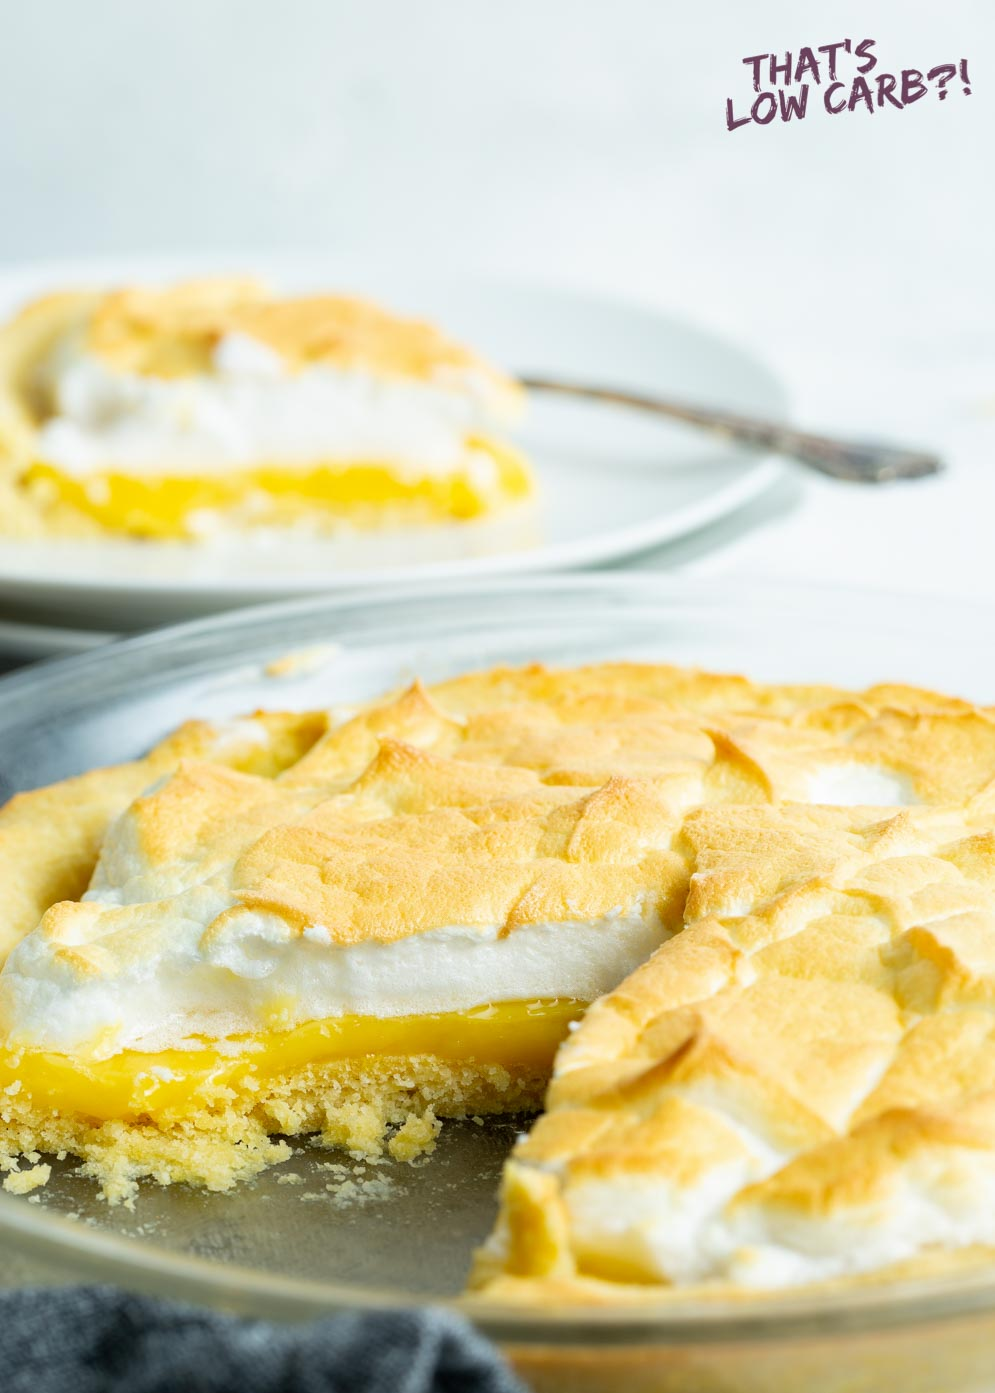 Picture of keto lemon meringue pie with slice take out of and slice of pie blurred out in background